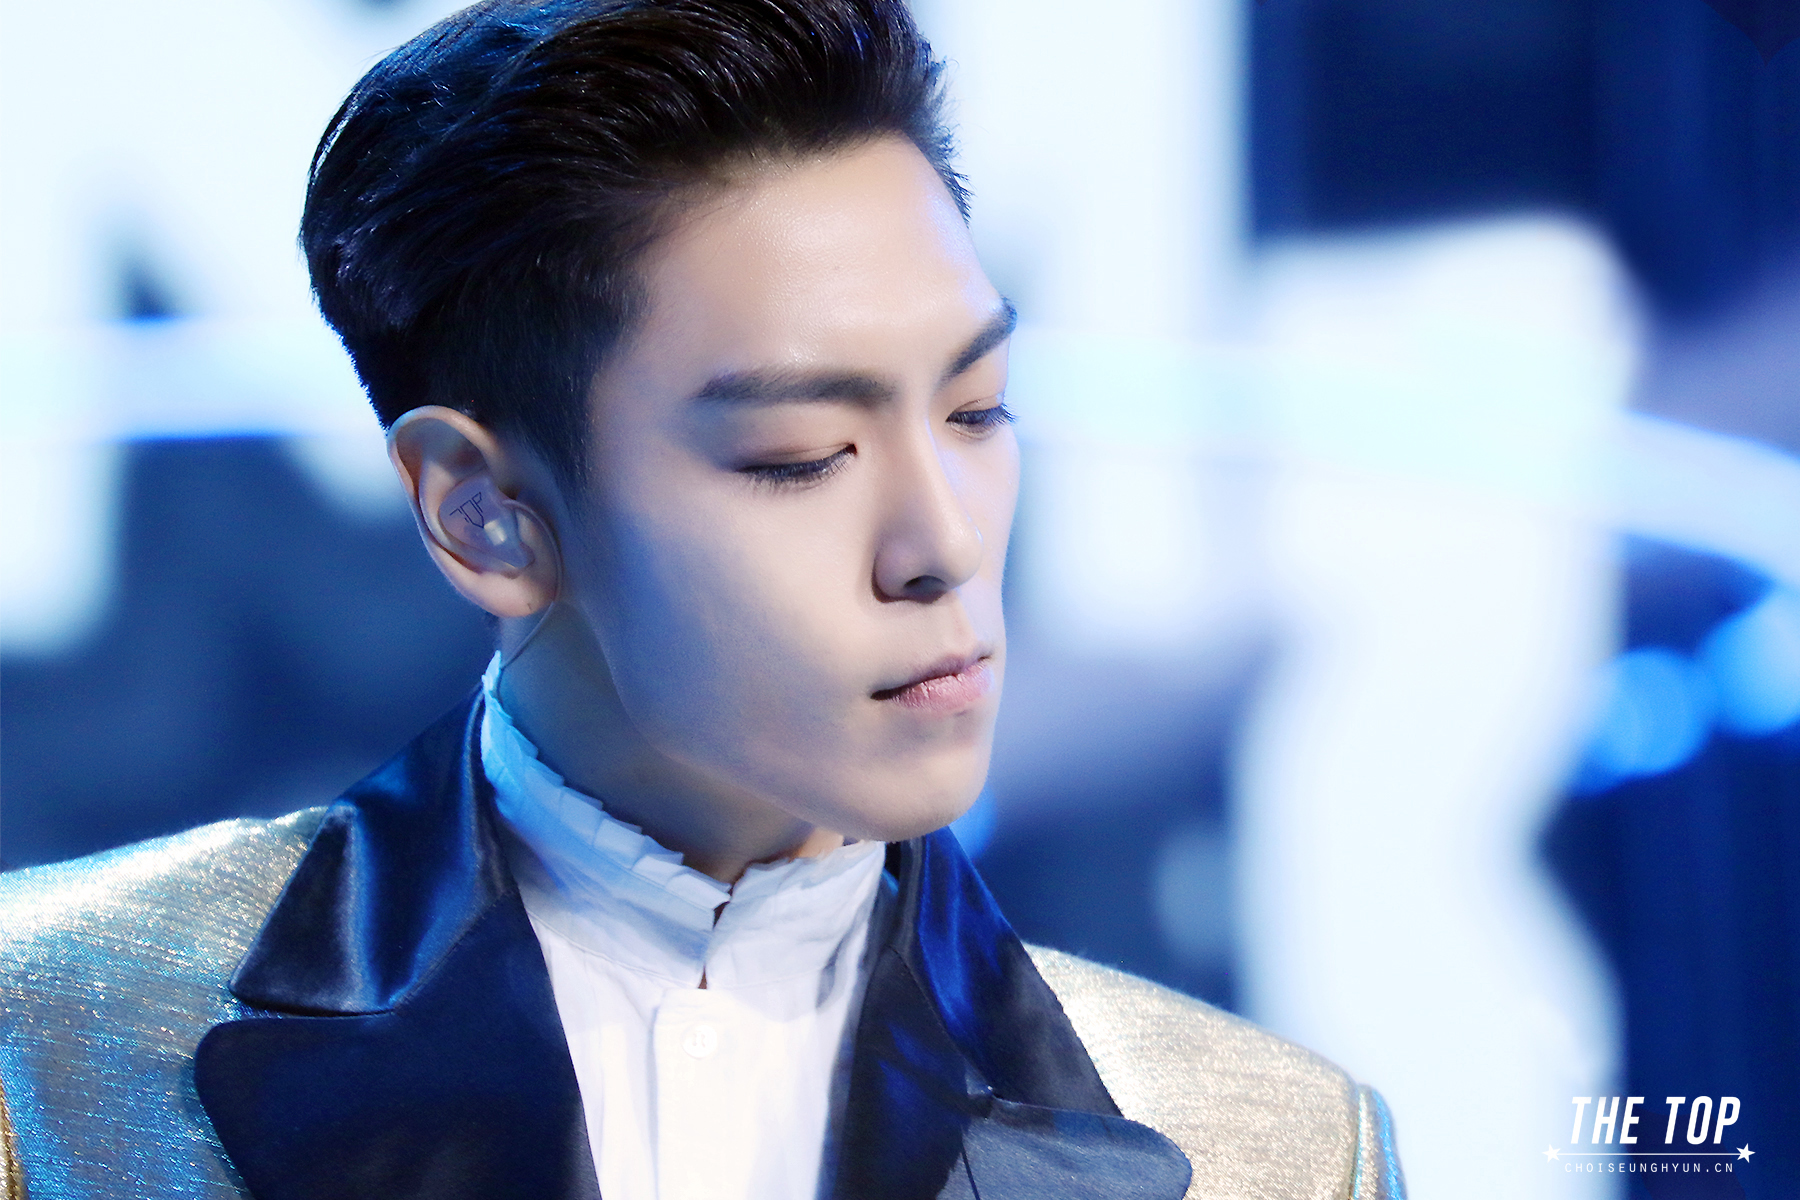 TOP Hunan TV HQs By TheTOP 2015-12-31 (1)